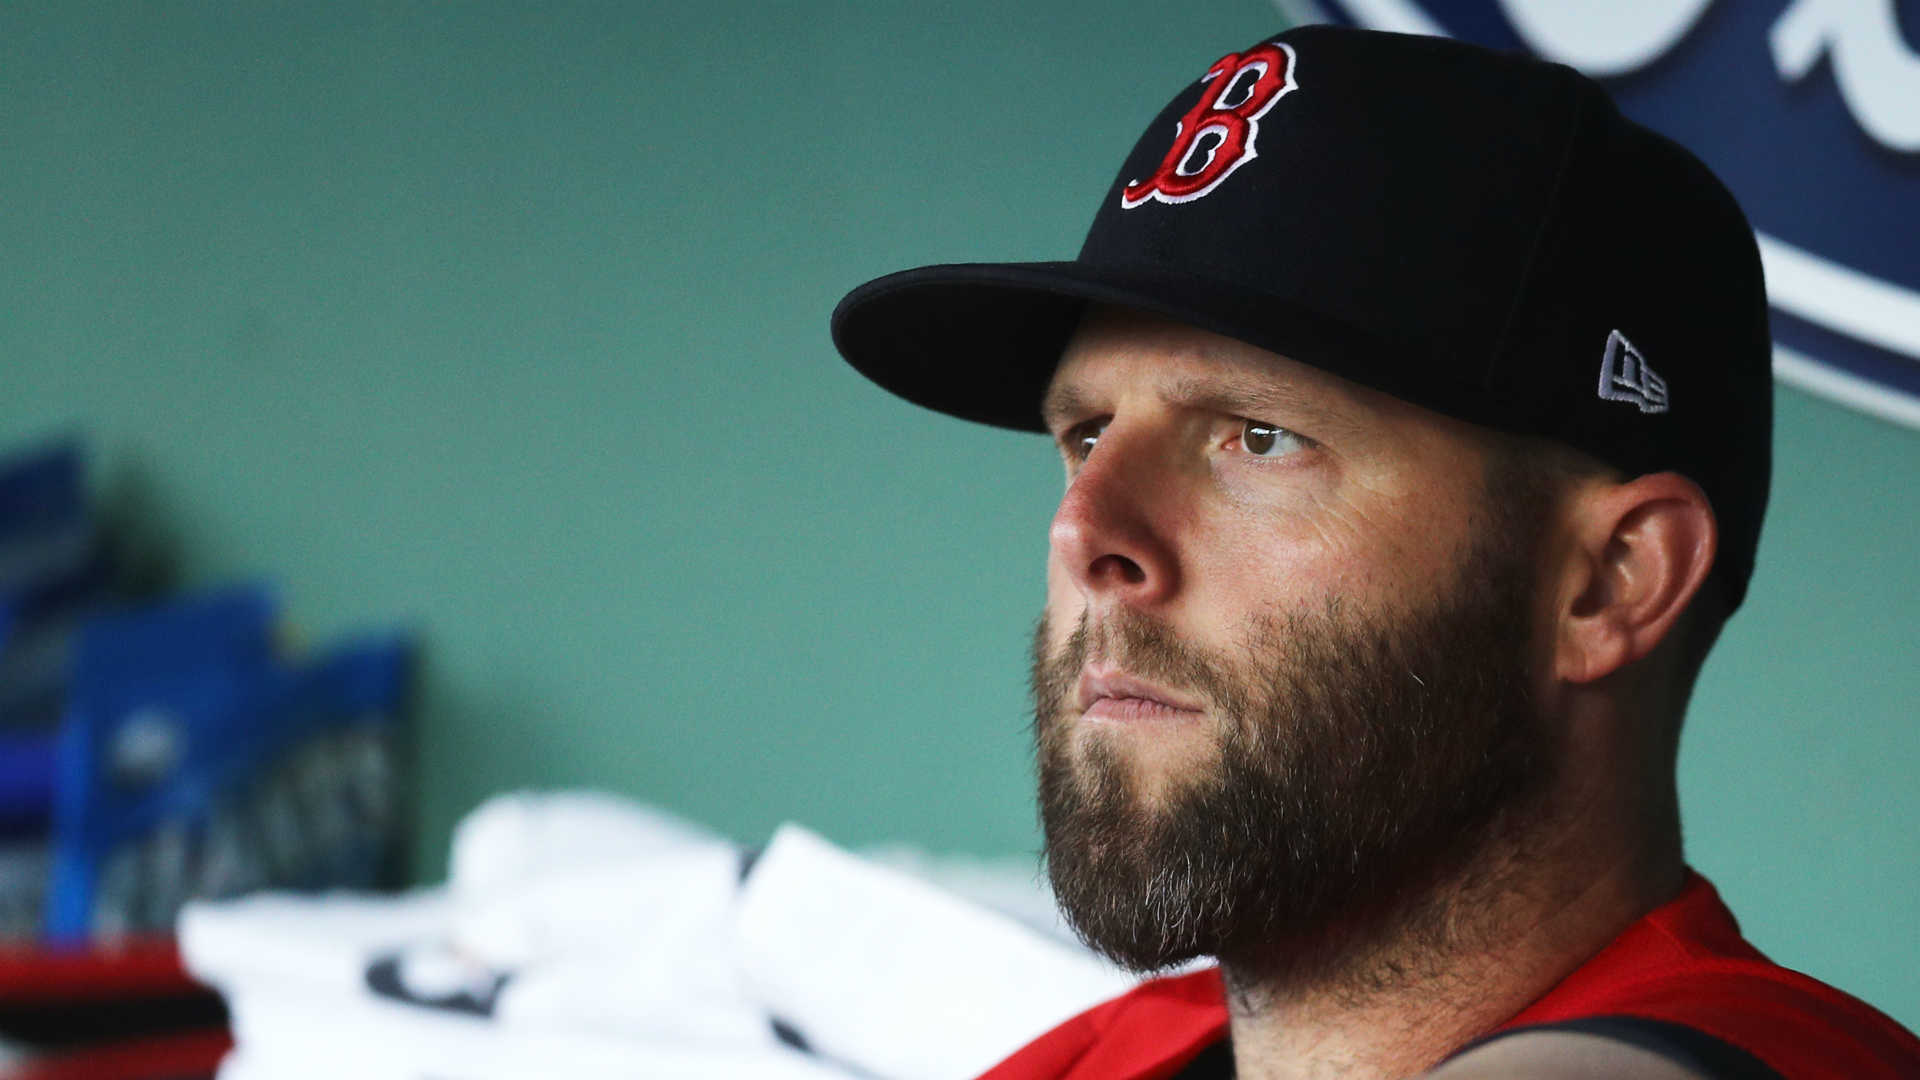 Dustin Pedroia injury update: Red Sox star (knee) lands on injured list